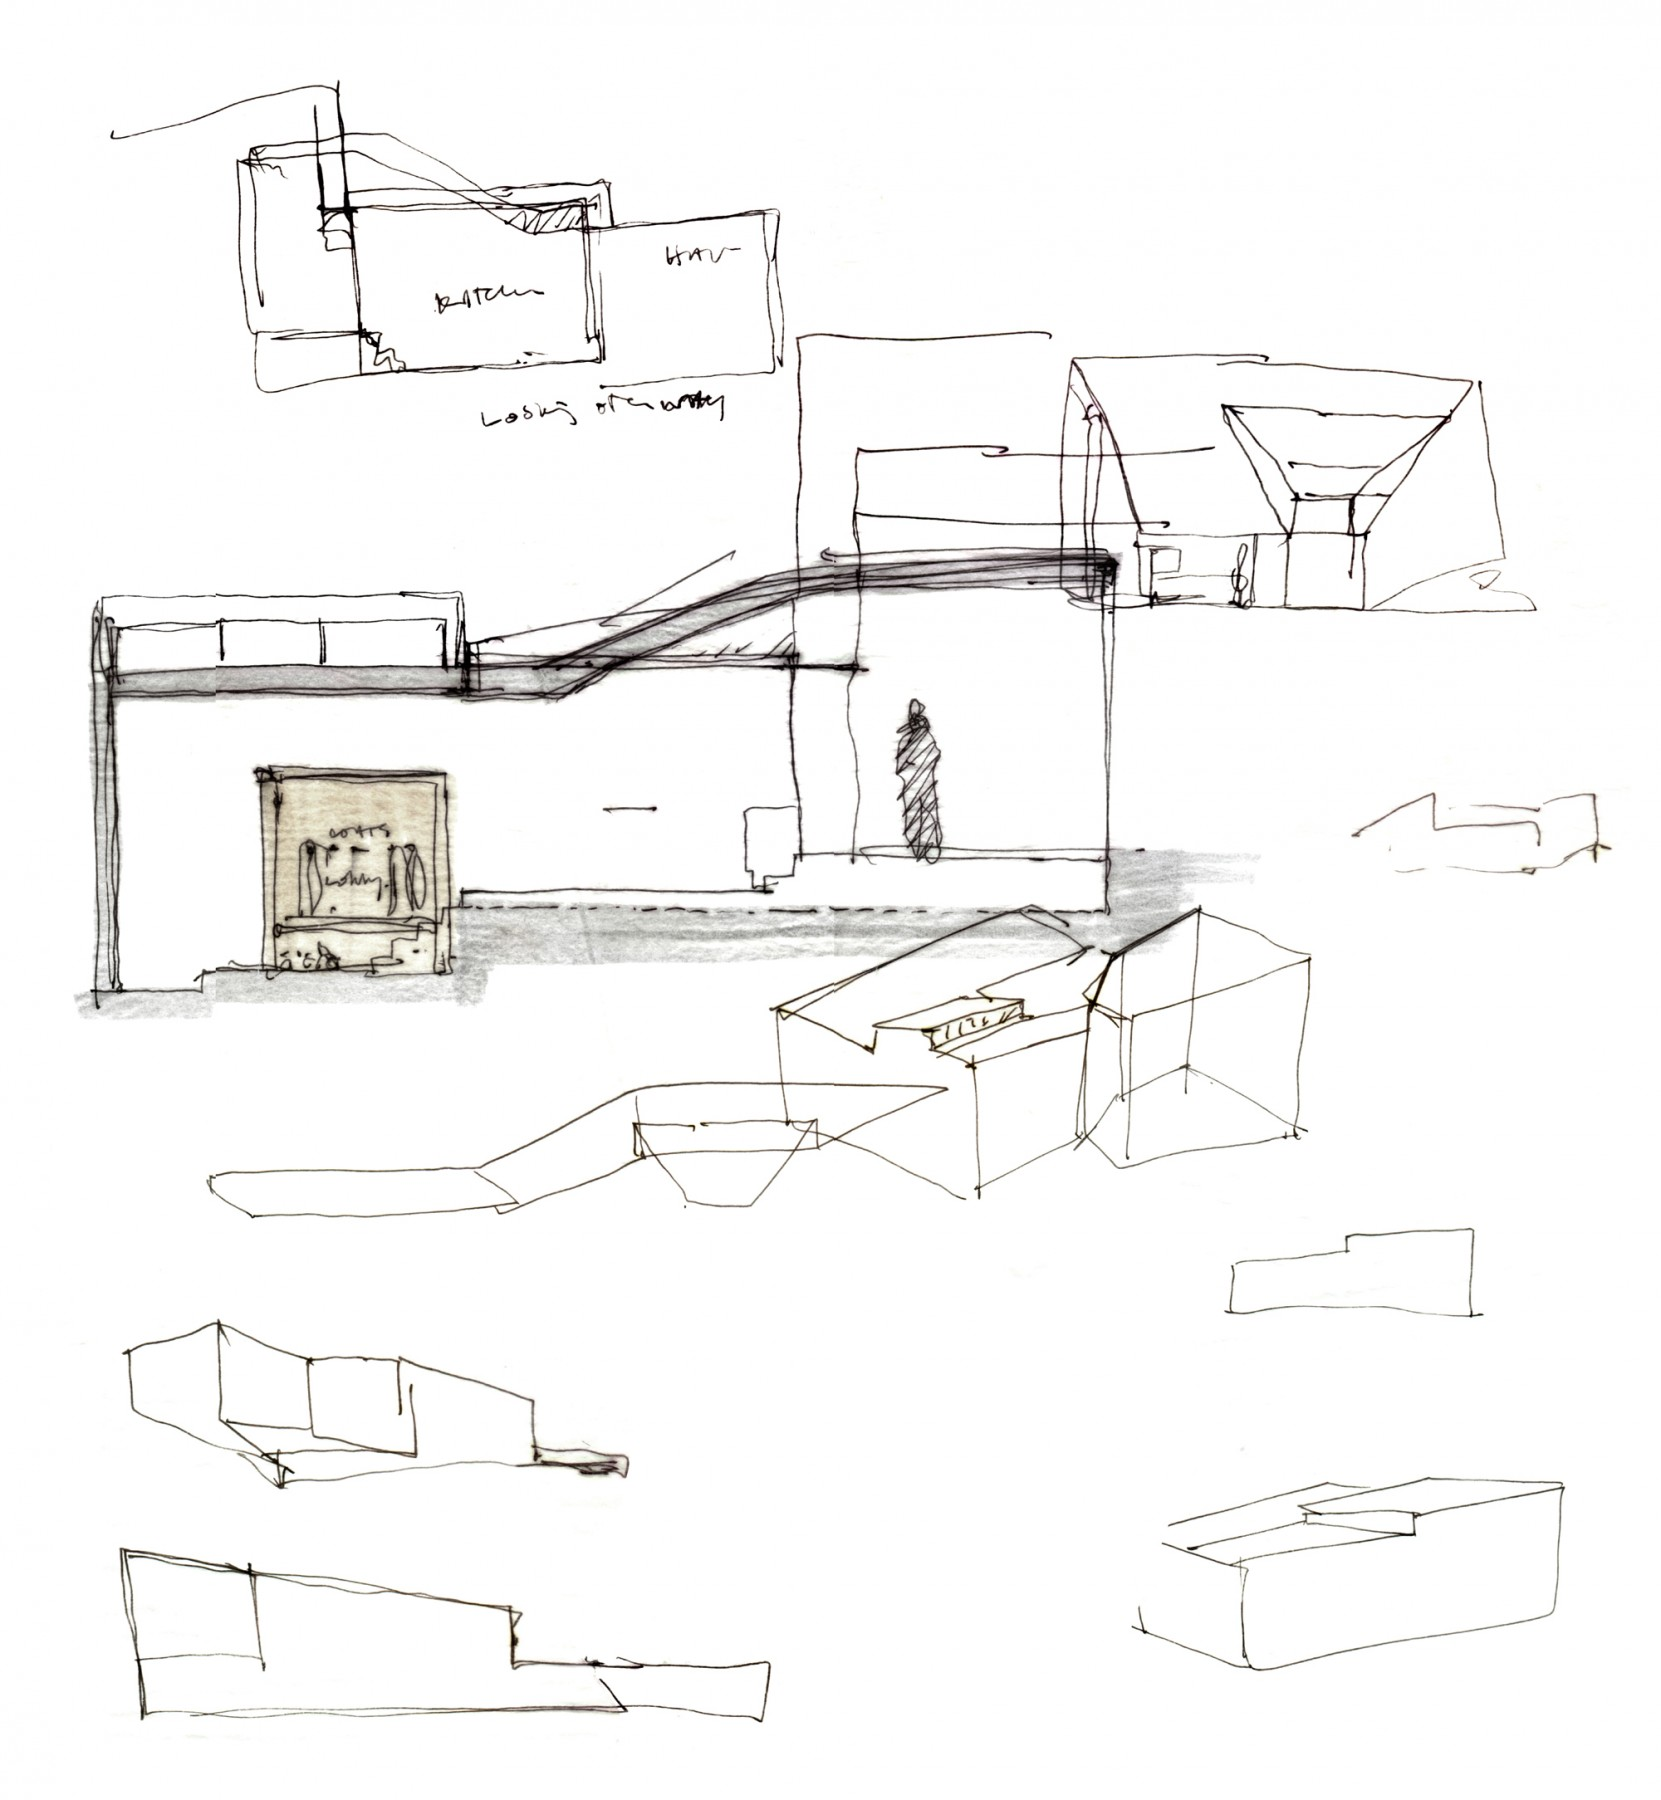 FaHa-Farm-house-barn-County-Clare-Ireland-residential-home-rural-timber-zinc-Jamie-Fobert-Architects-3